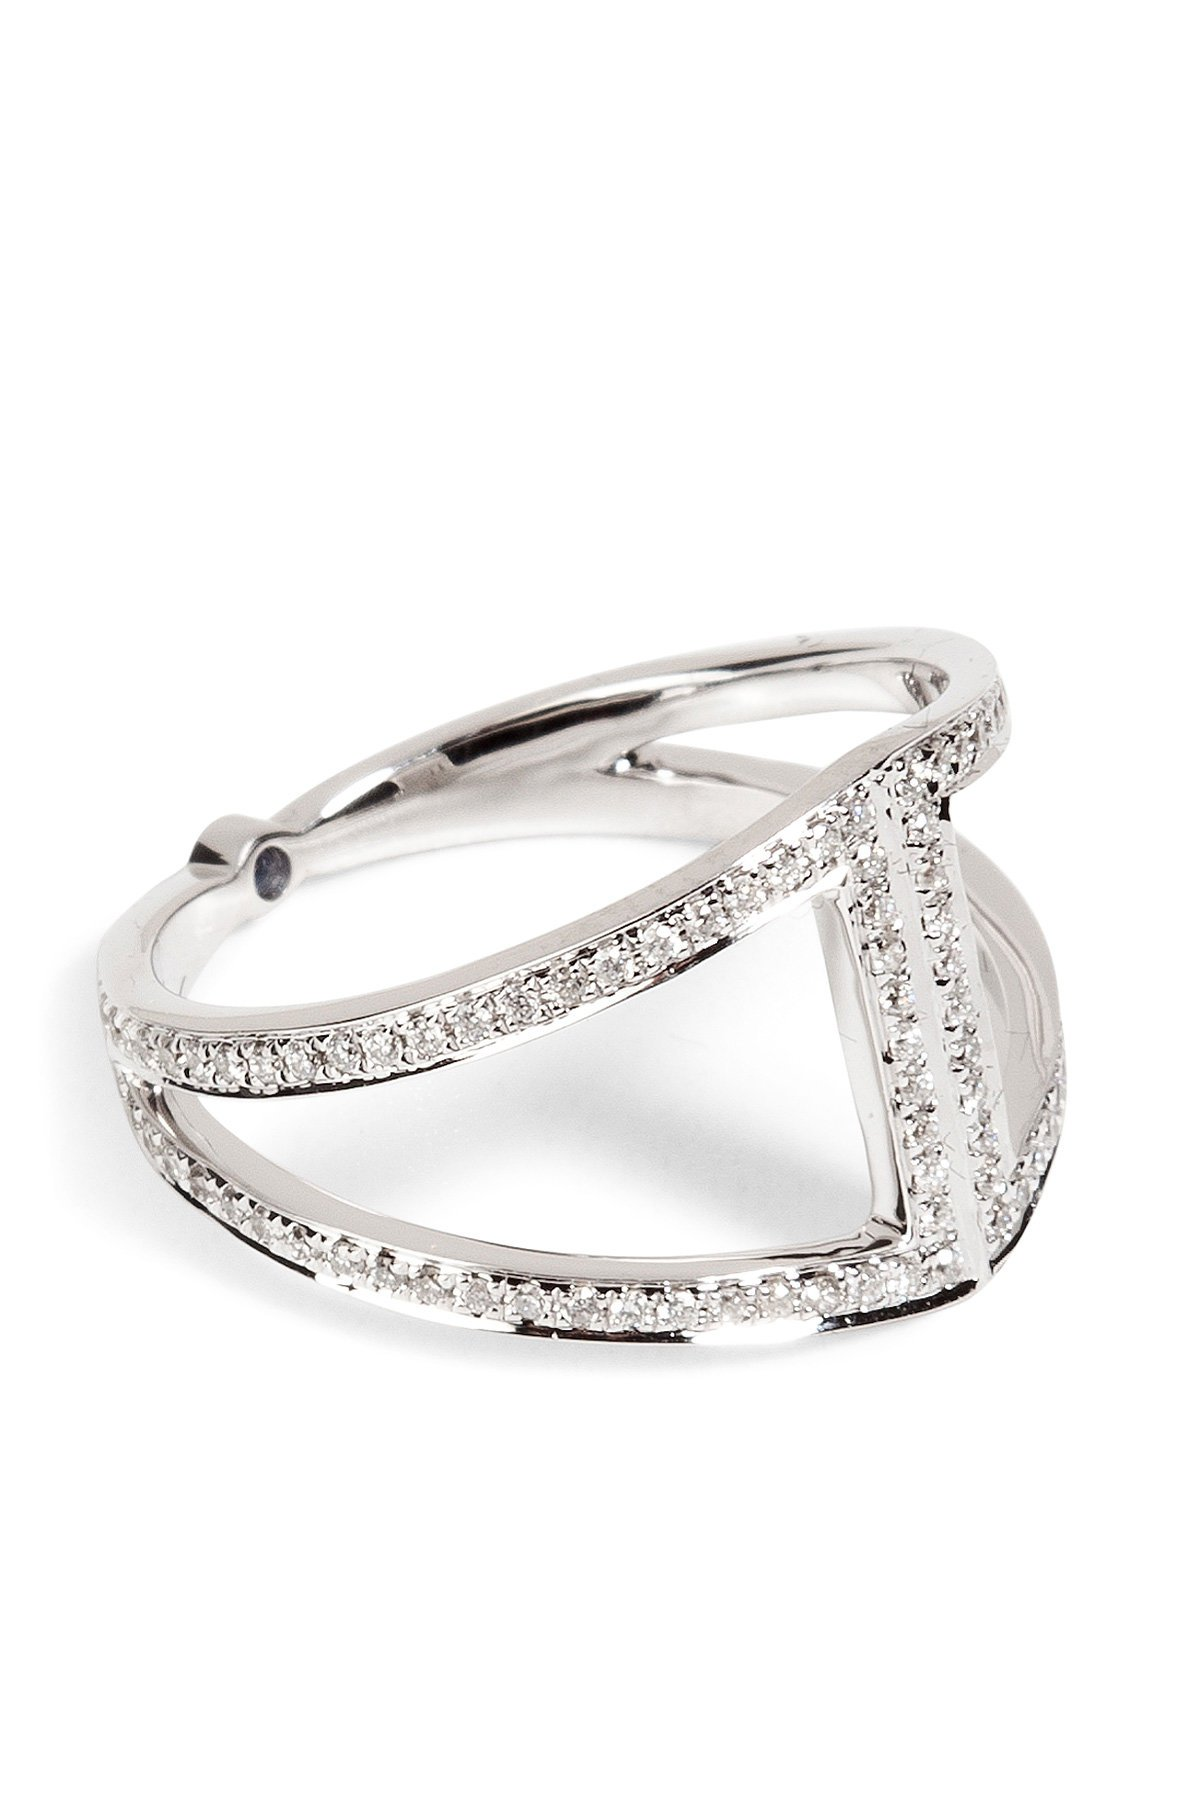 18K Gold Rhombus Ring with White Diamonds Gr. One Size